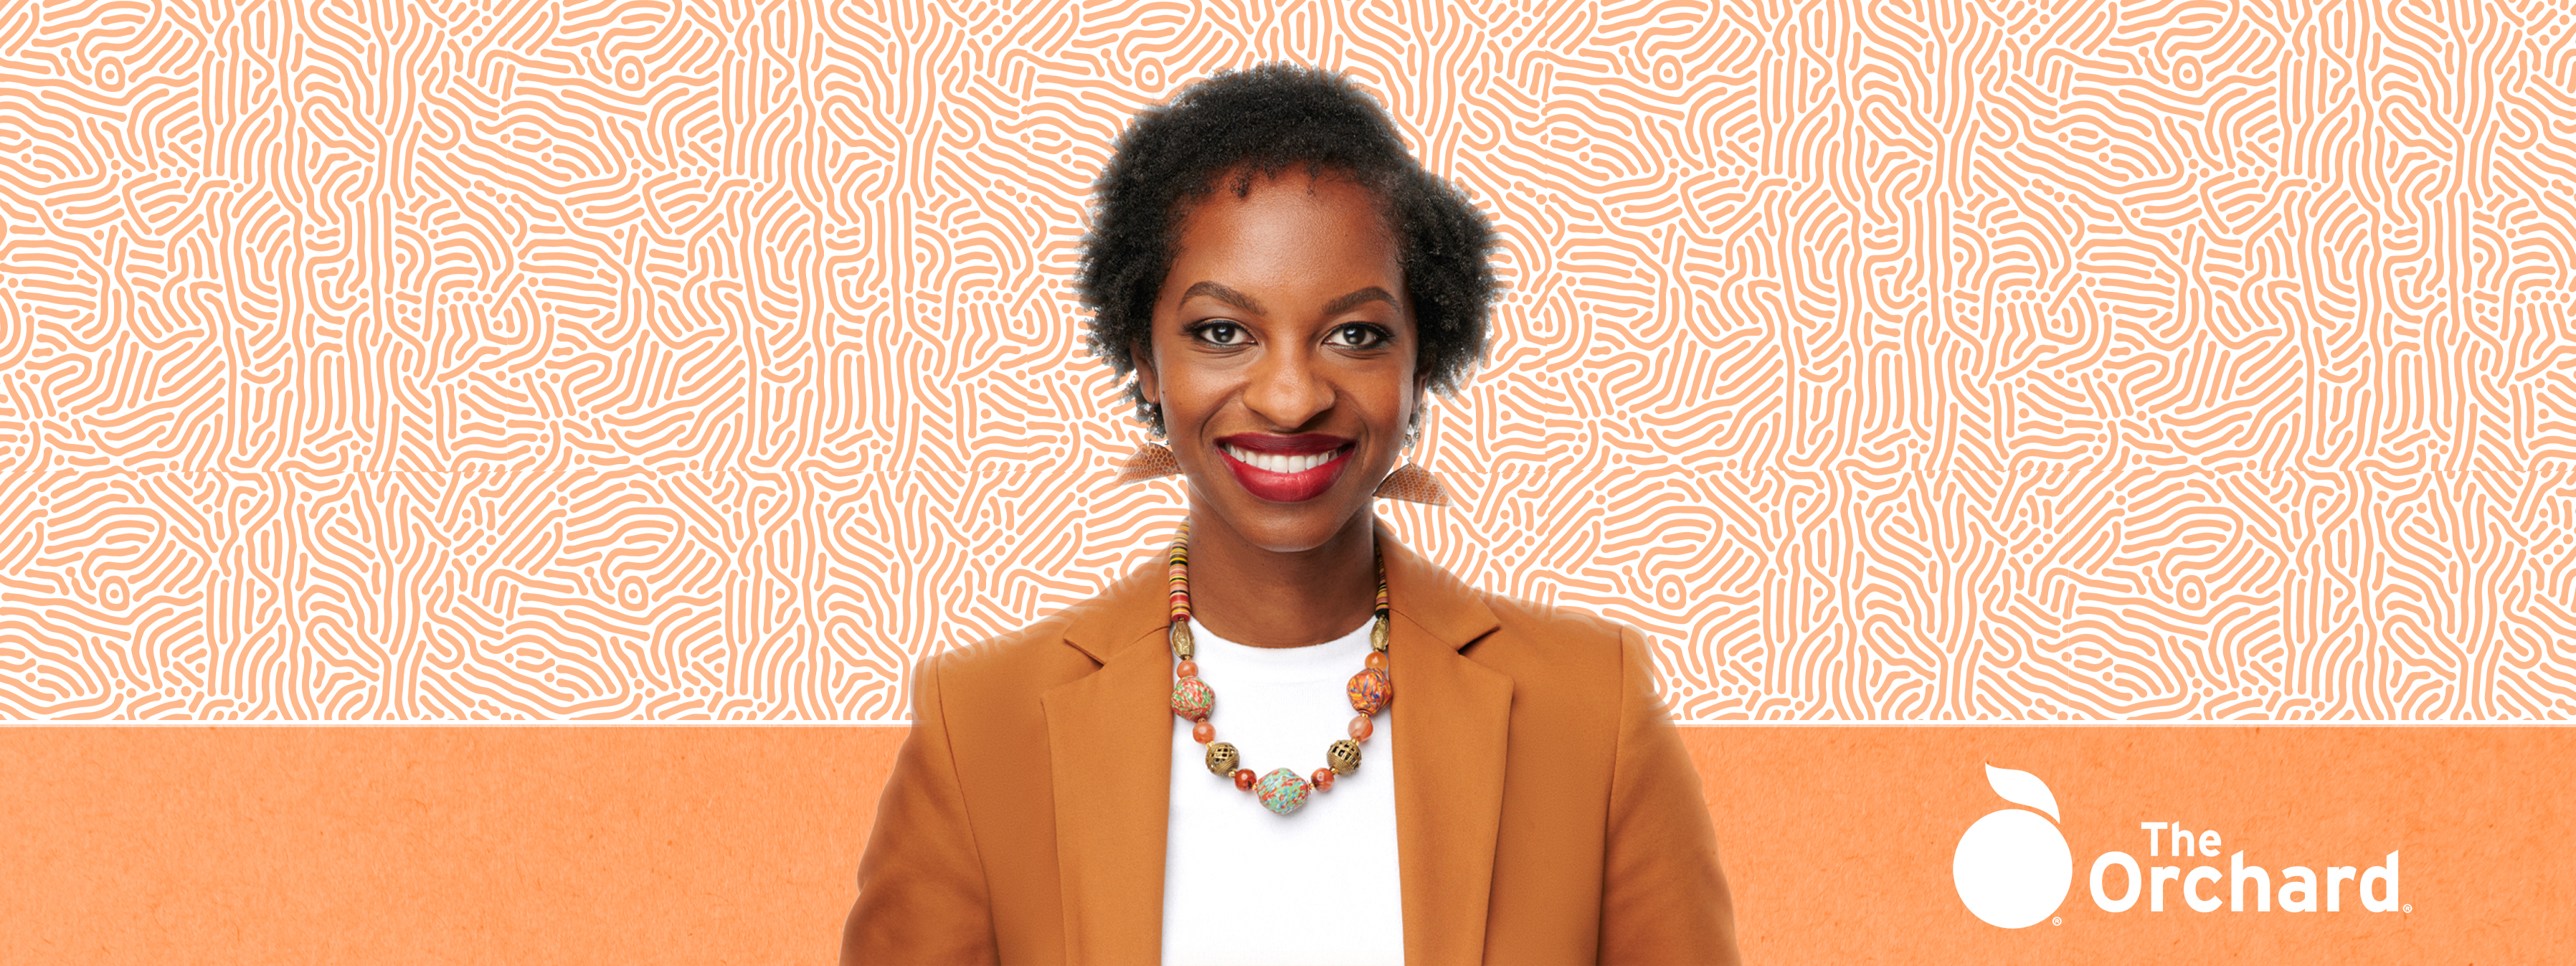 Naledi Nyahuma Seck Named Vice President of Diversity, Equity & Inclusion at The Orchard